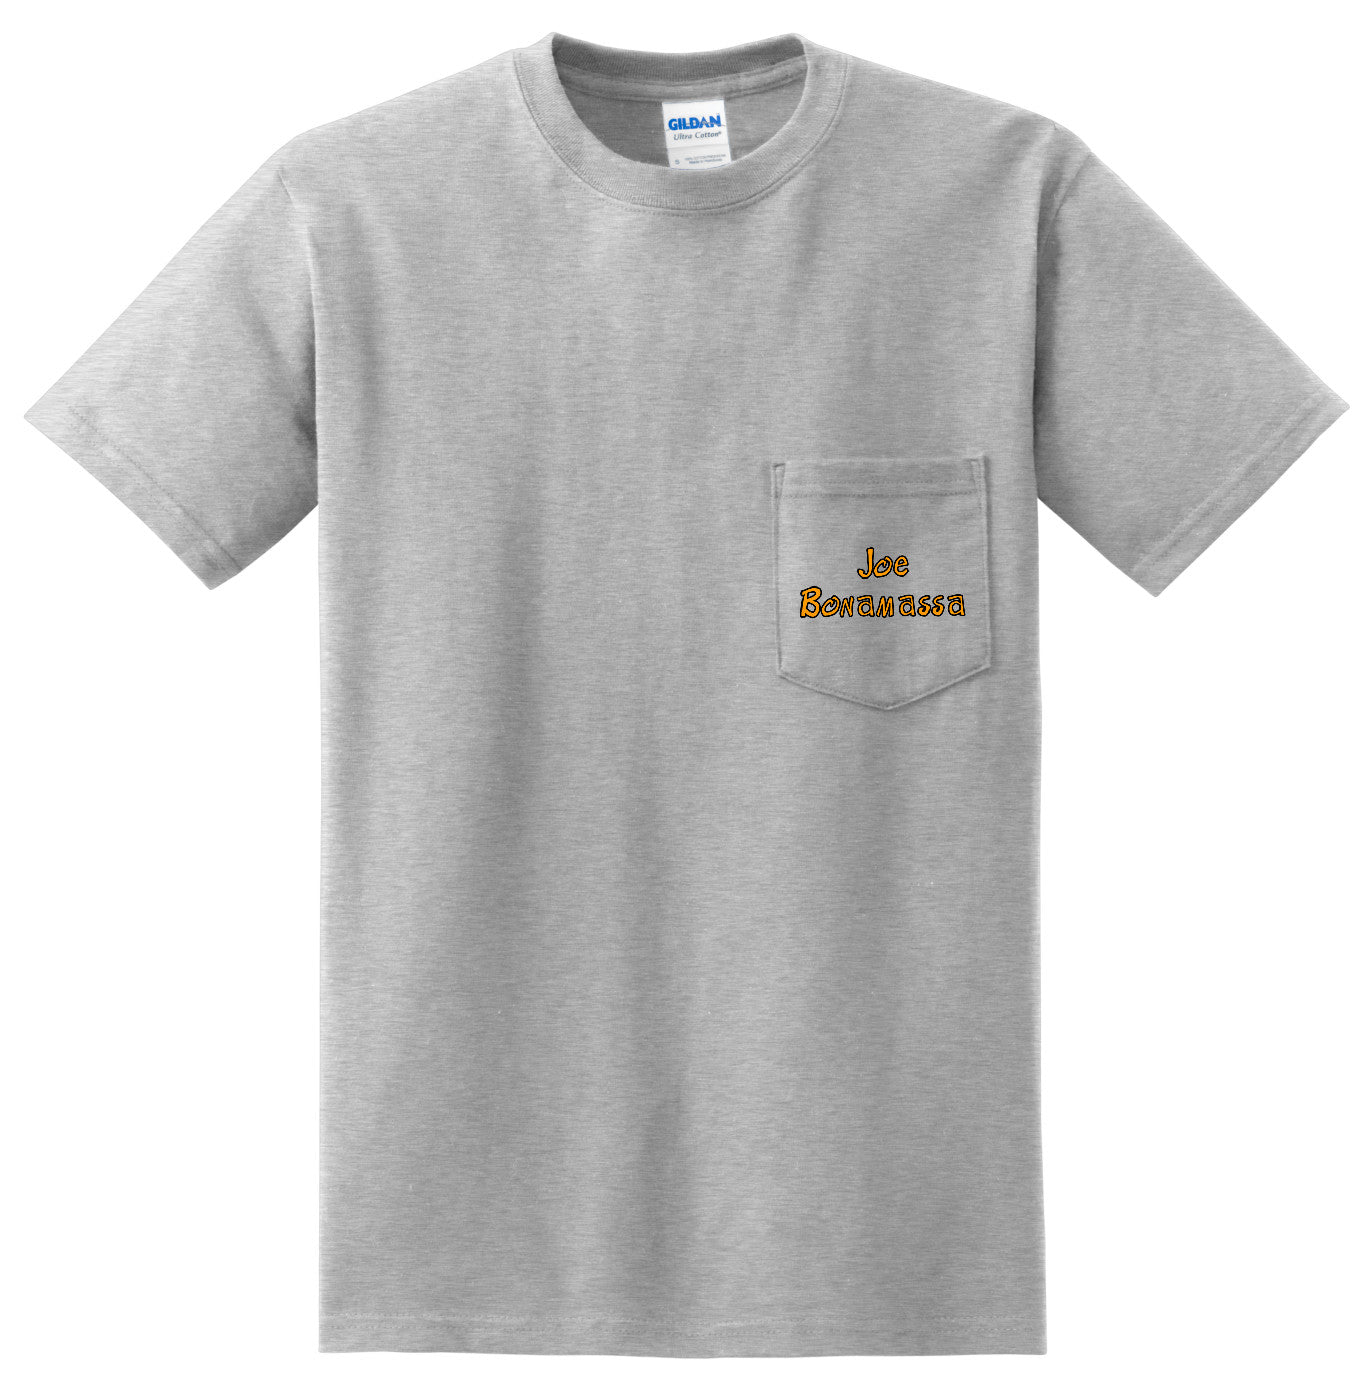 Blues to the Bone Pocket T-Shirt (Unisex) - Ash